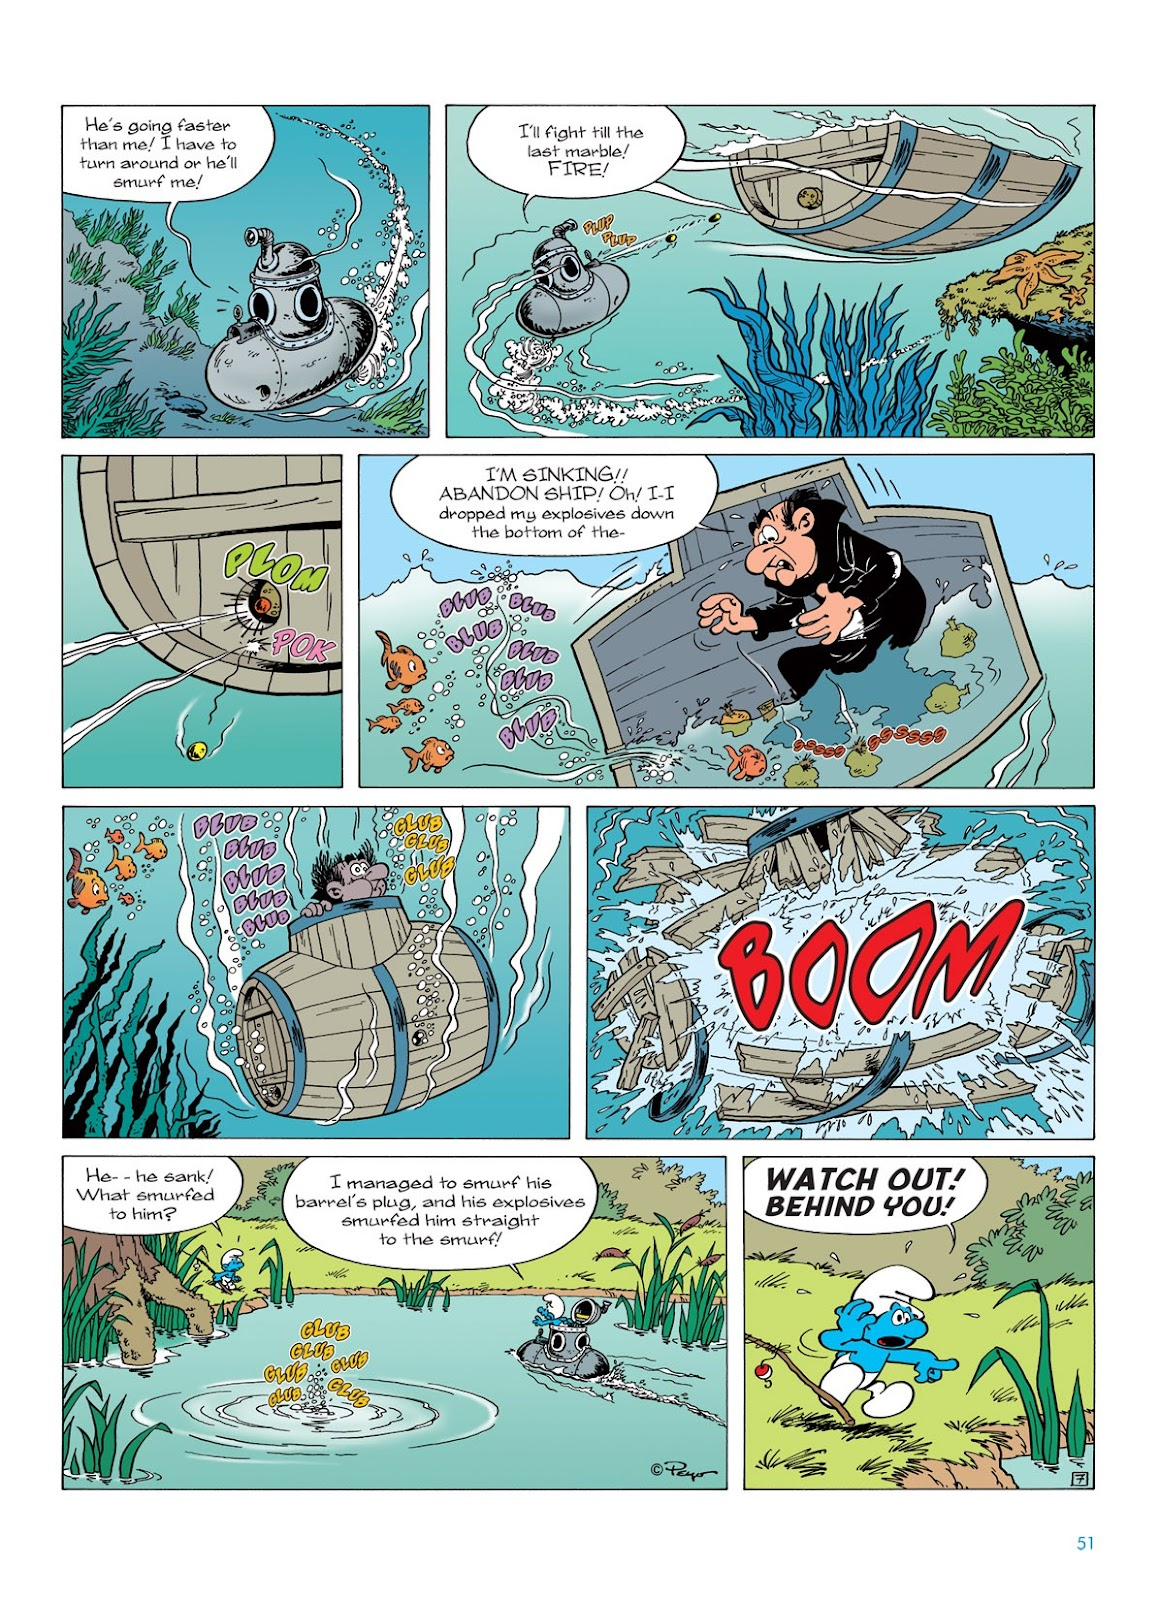 Read online The Smurfs comic -  Issue #7 - 51